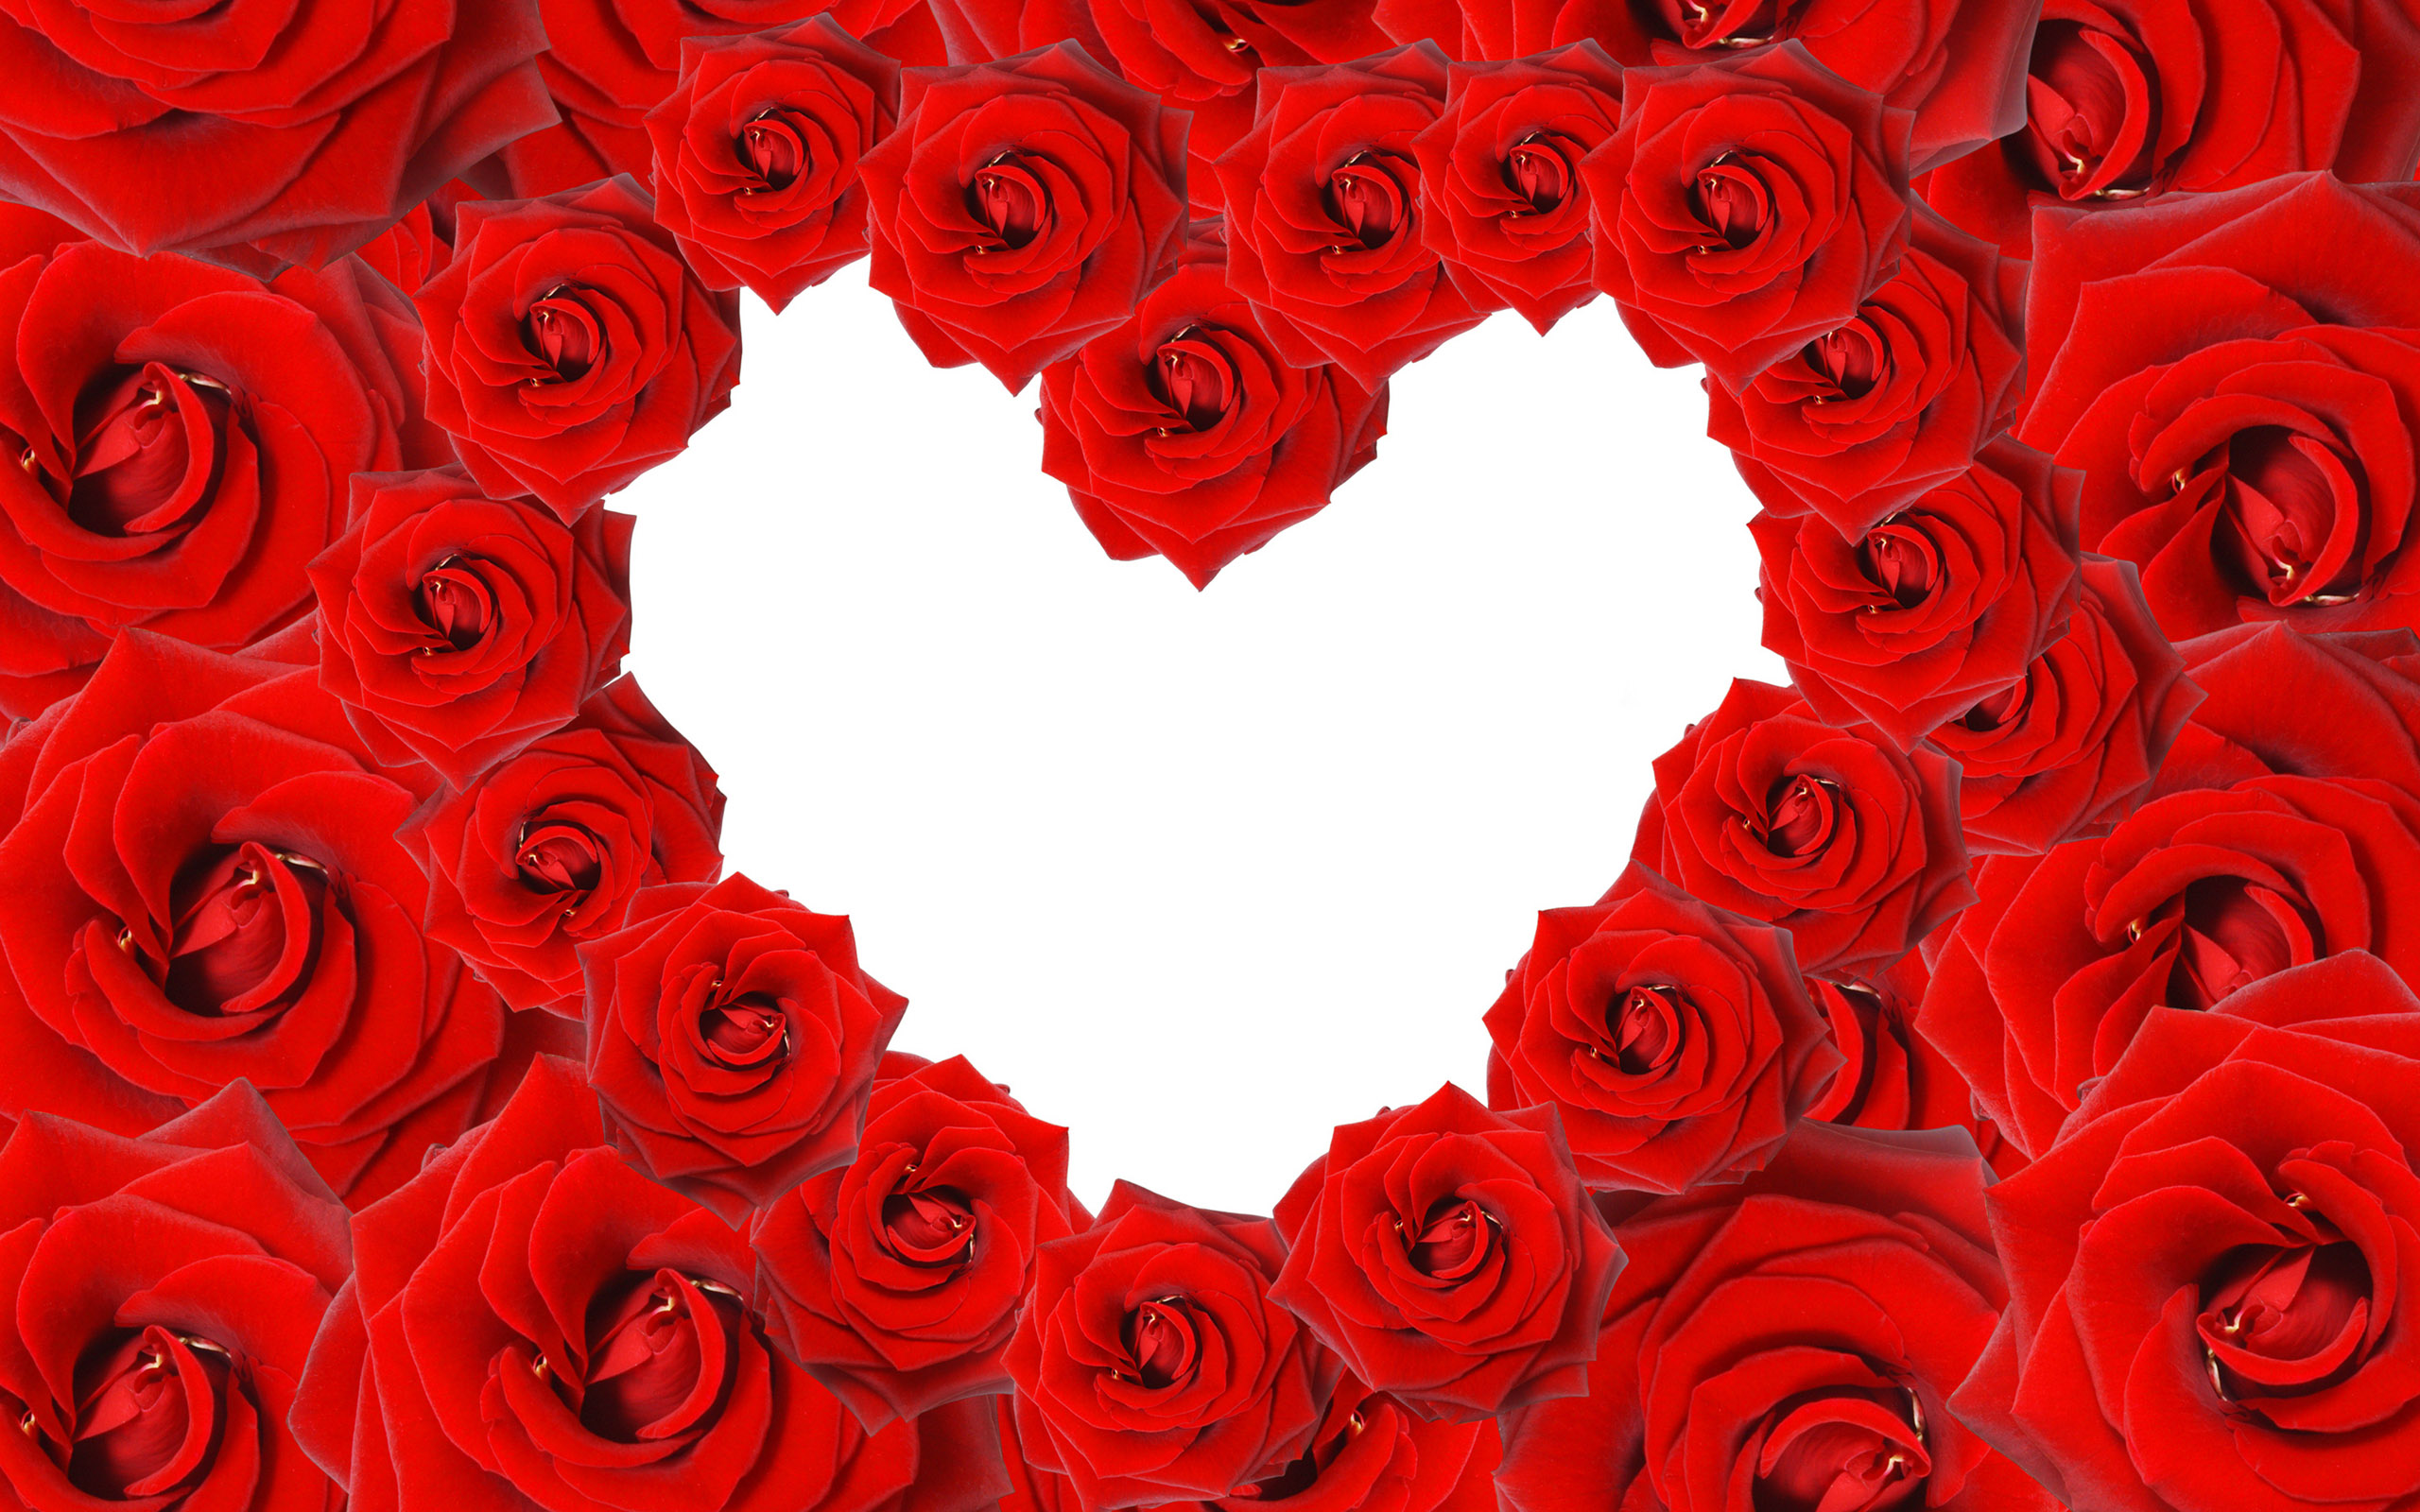 Red Roses Love Heart Wallpapers HD Wallpapers 2560x1600